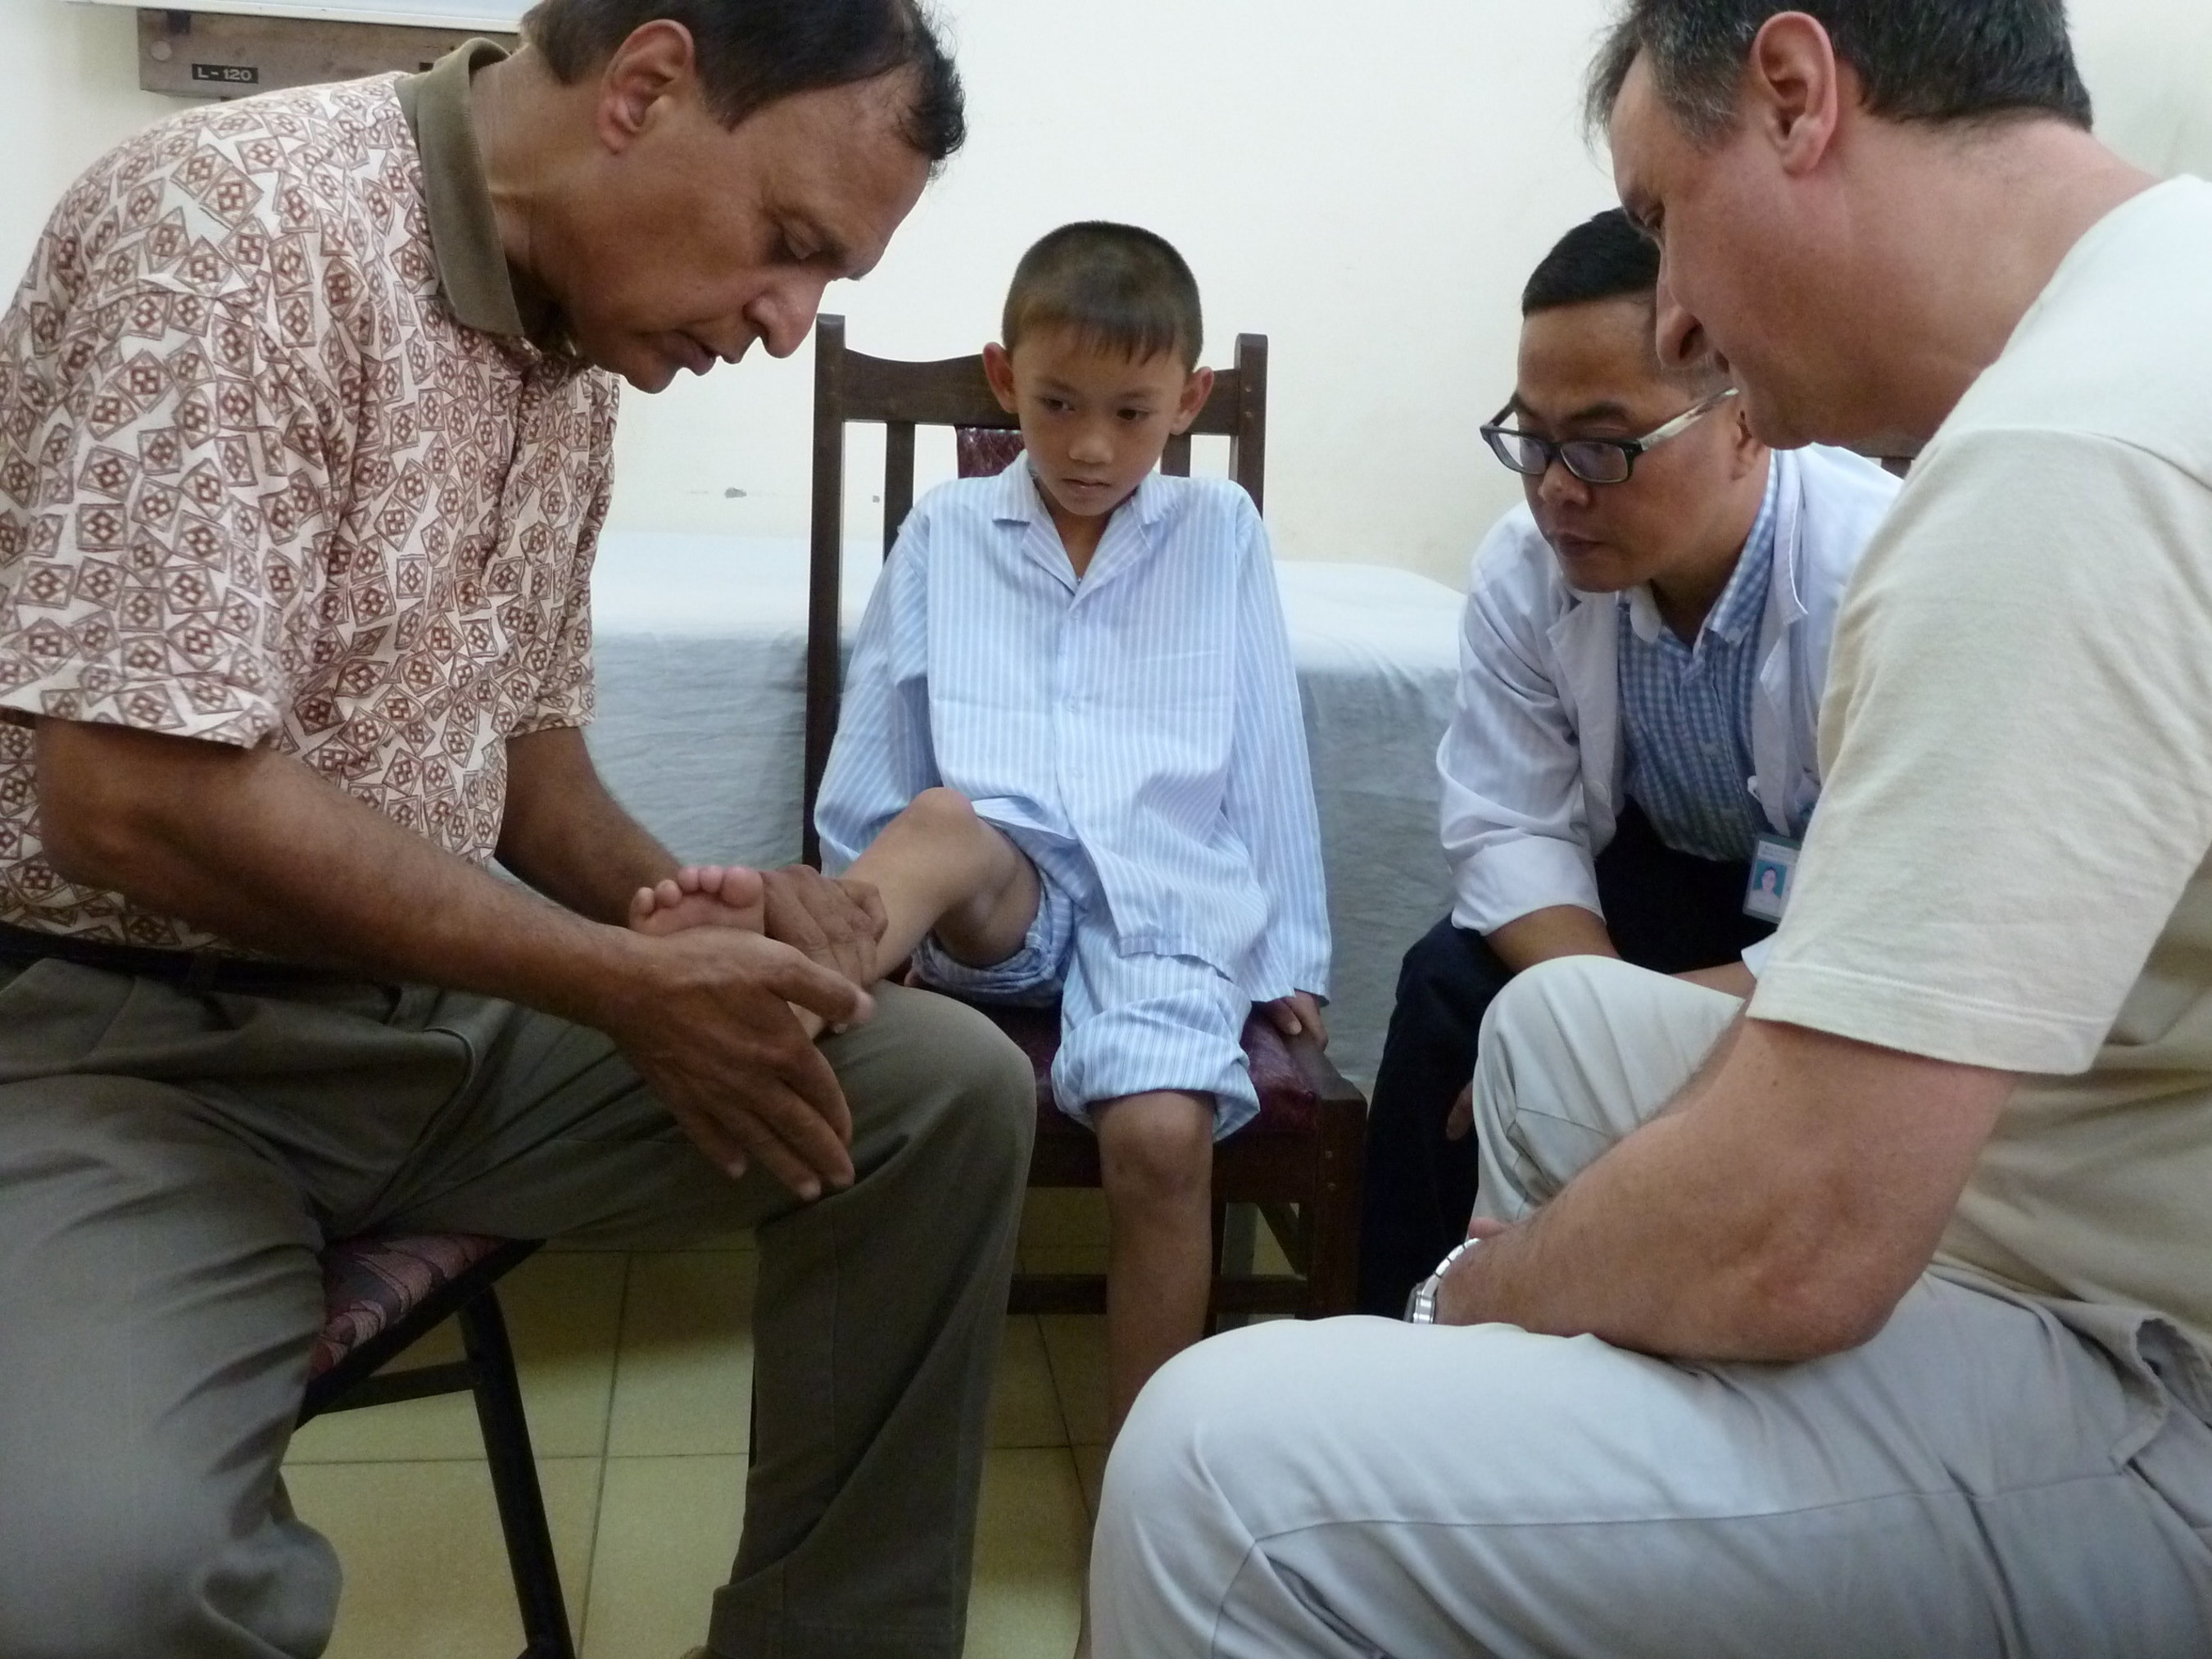 AOFAS volunteers Naren Gurbani, MD (l.) and Mario Adames, MD (r.) evaluate a Vietnamese patient.